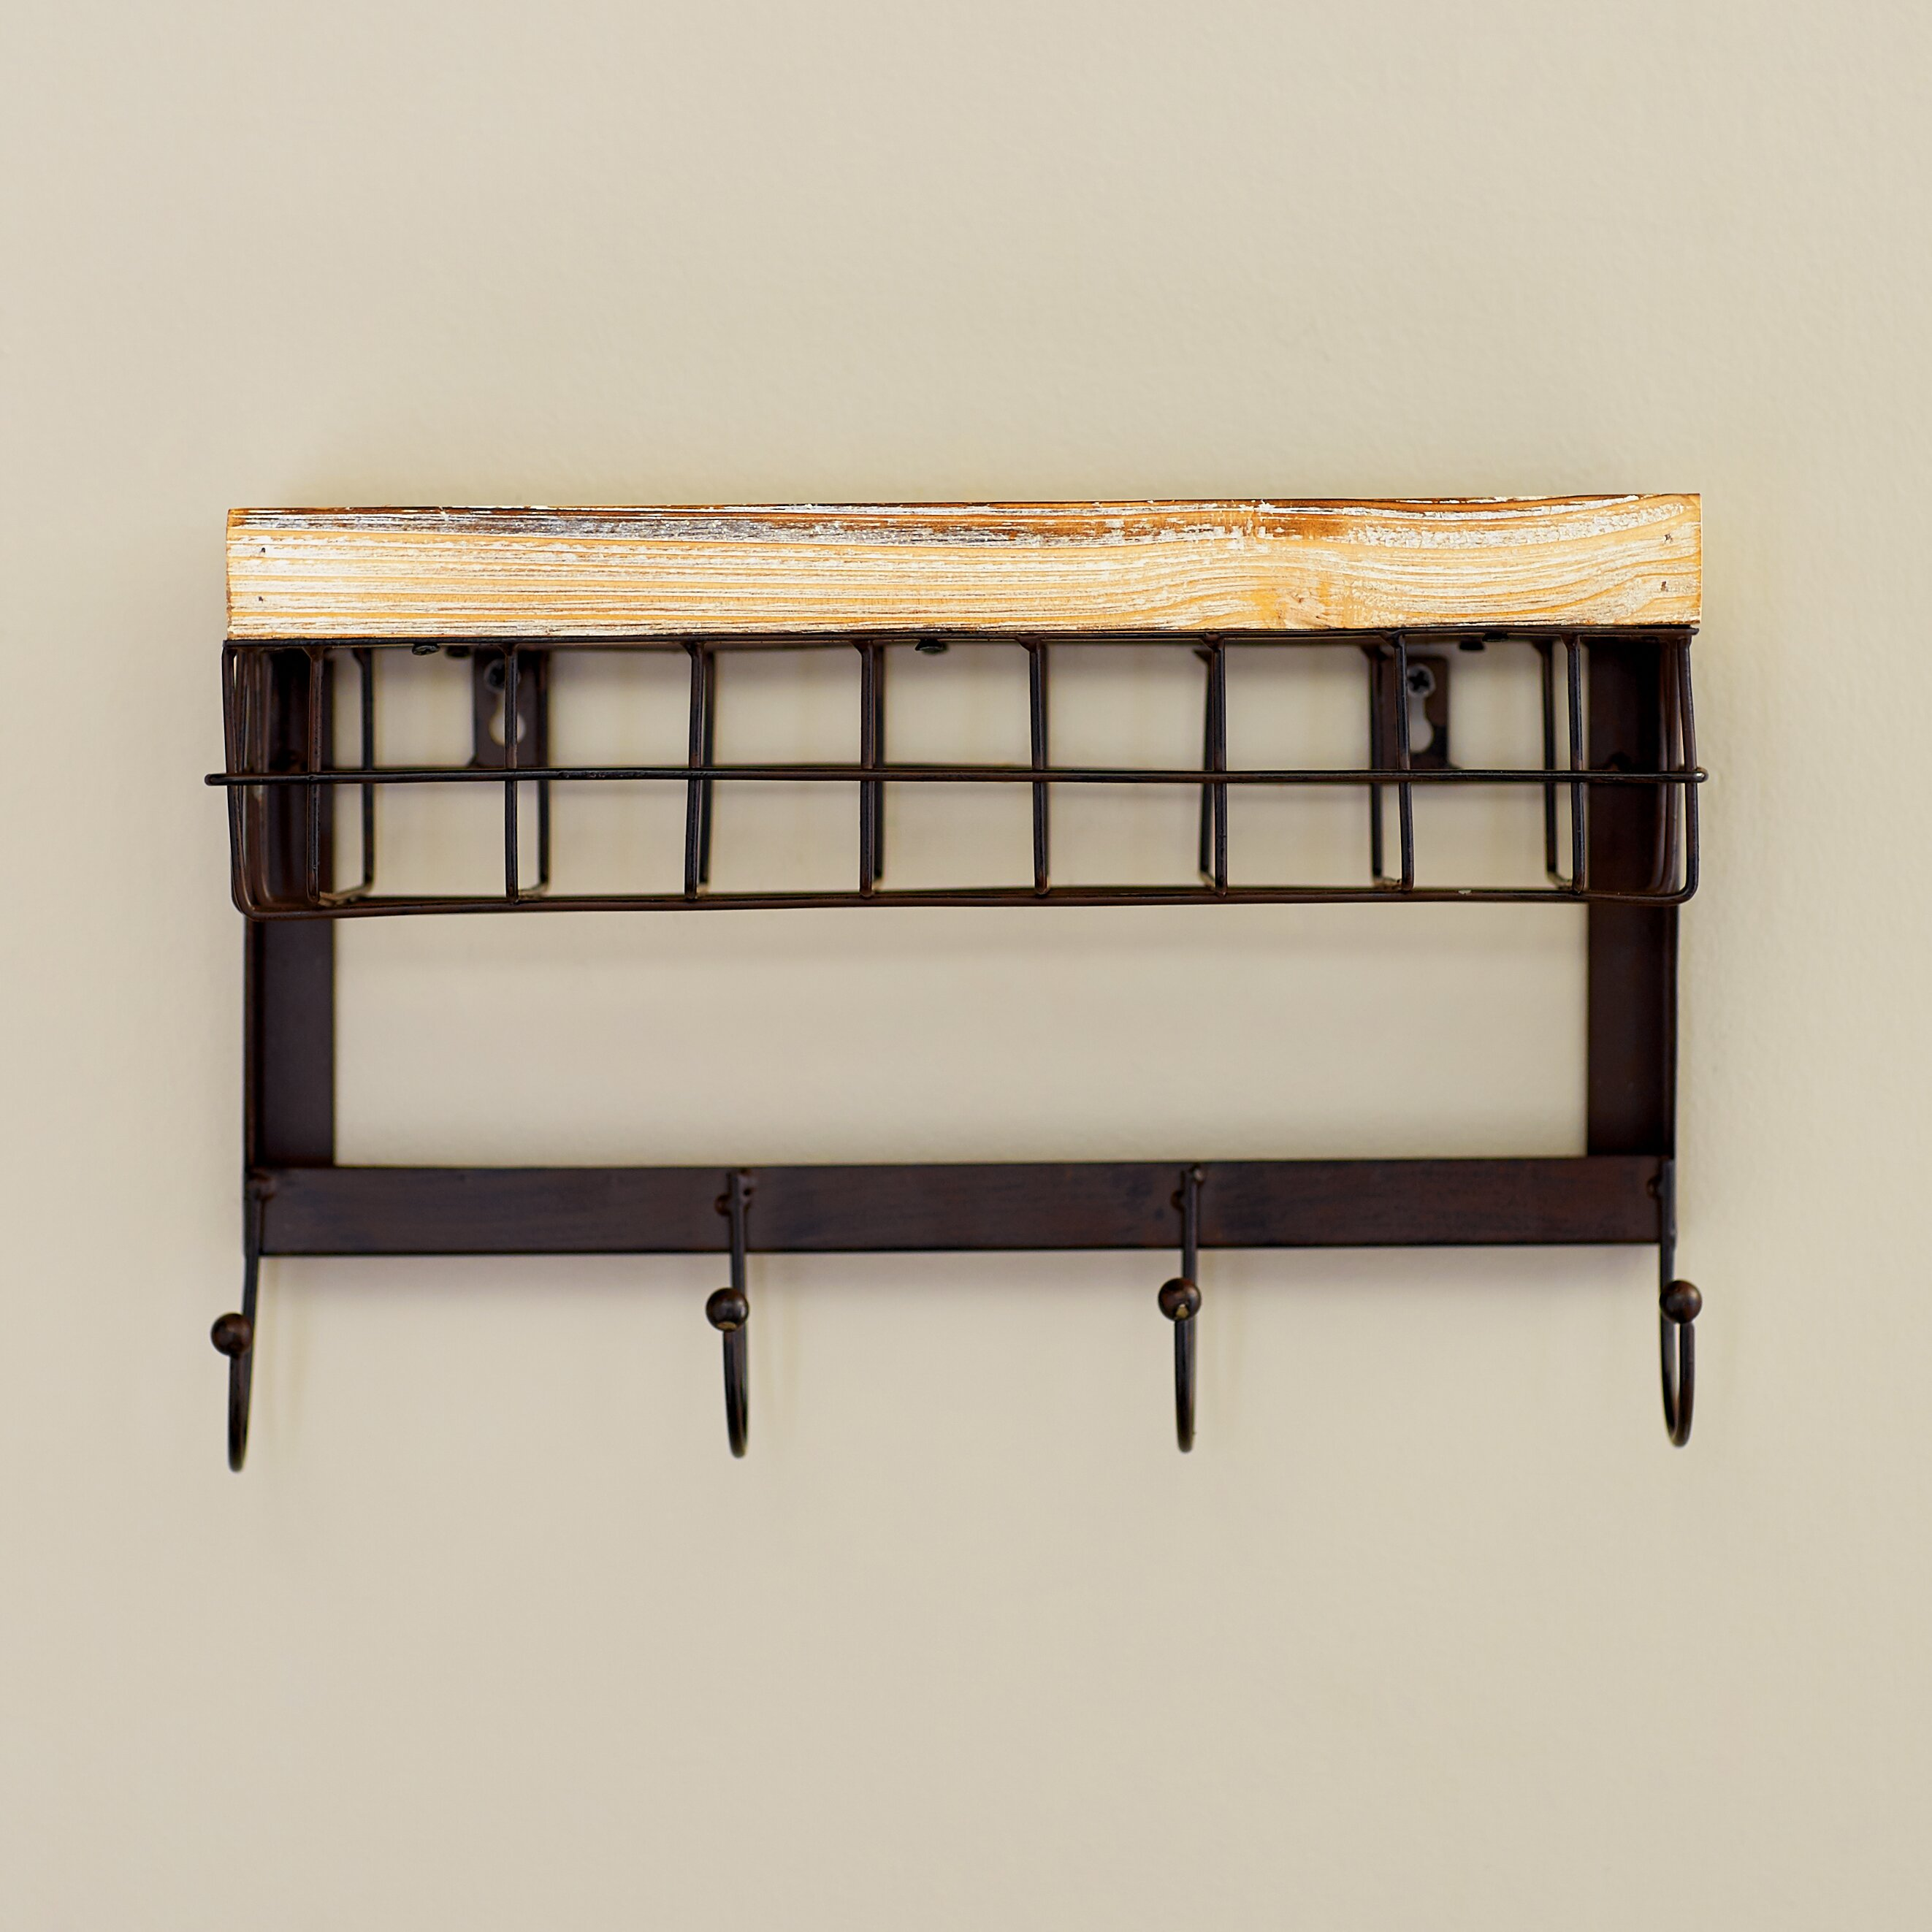 Very Impressive portraiture of Wall Mounted Coat Rack Plan Design Ideas  With Stylish Cubic Brown Wood